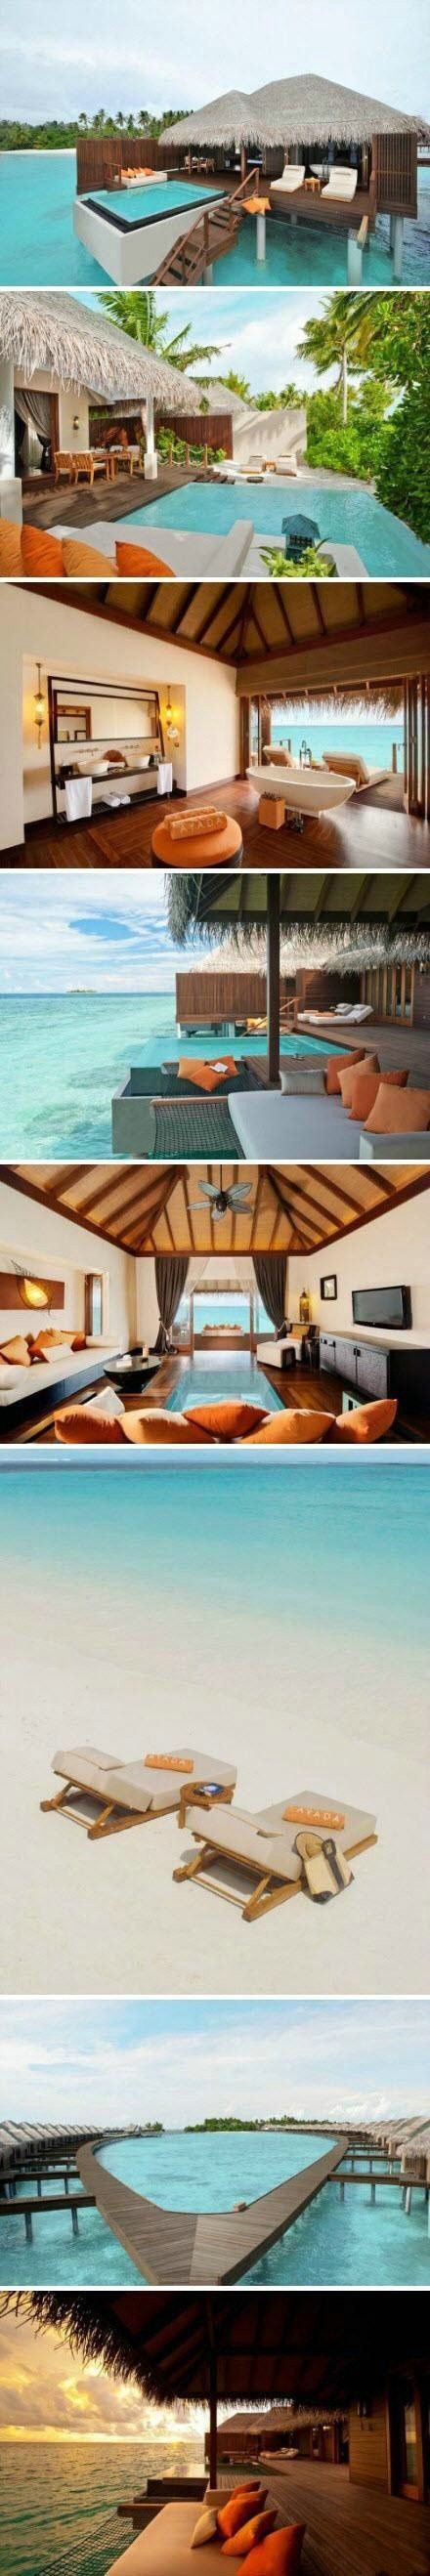 "Ayada Resort, Maldives This is my ""holy grail"" of vacations."